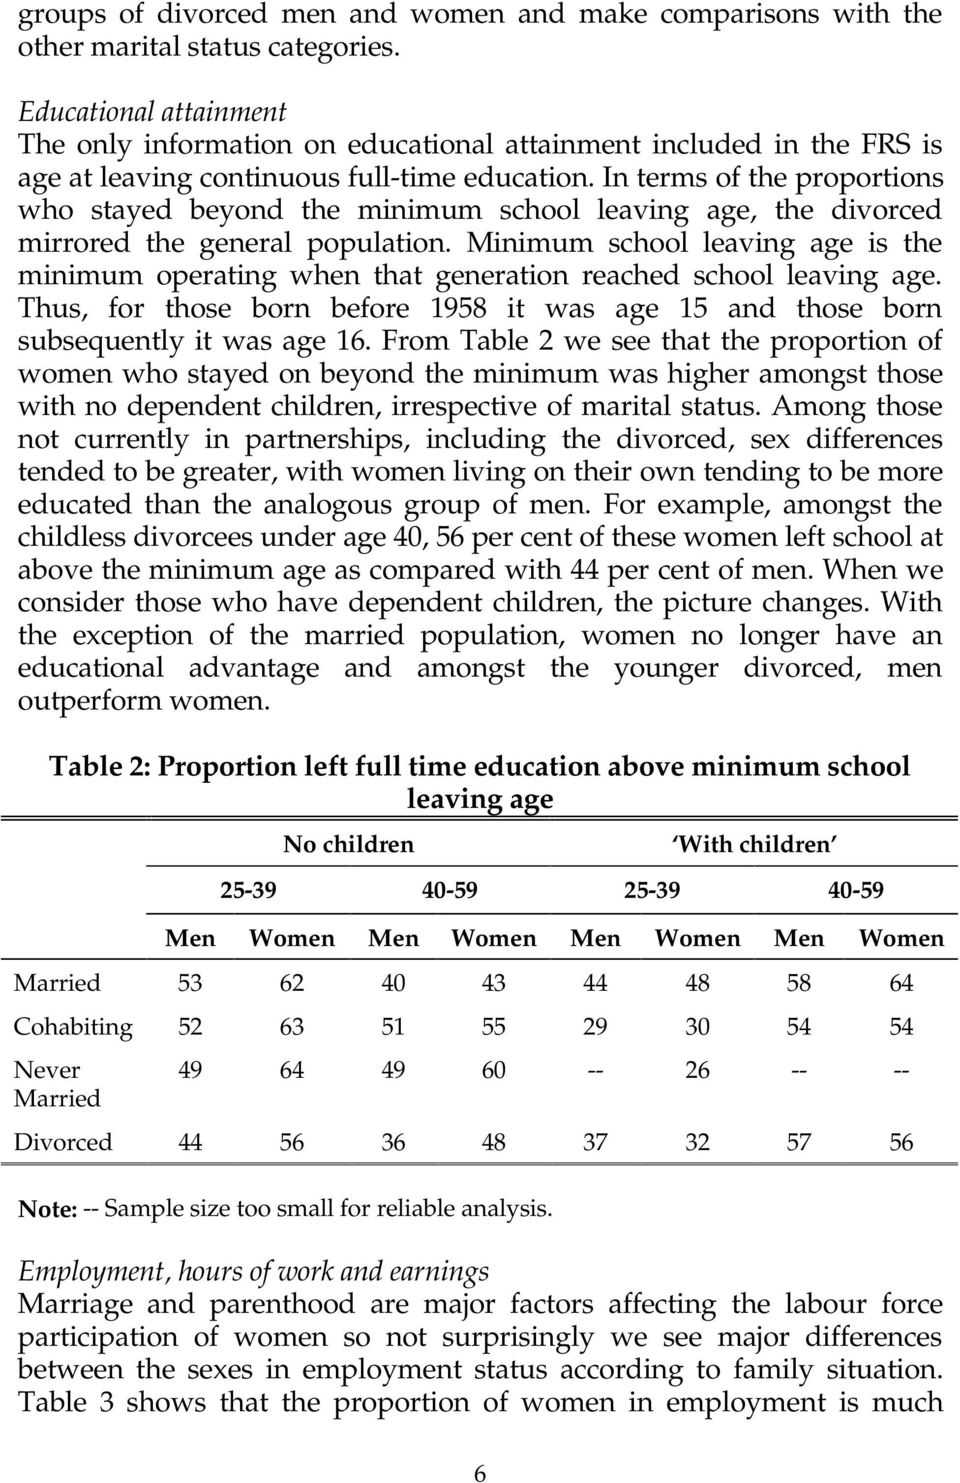 In terms of the proportions who stayed beyond the minimum school leaving age, the divorced mirrored the general population.